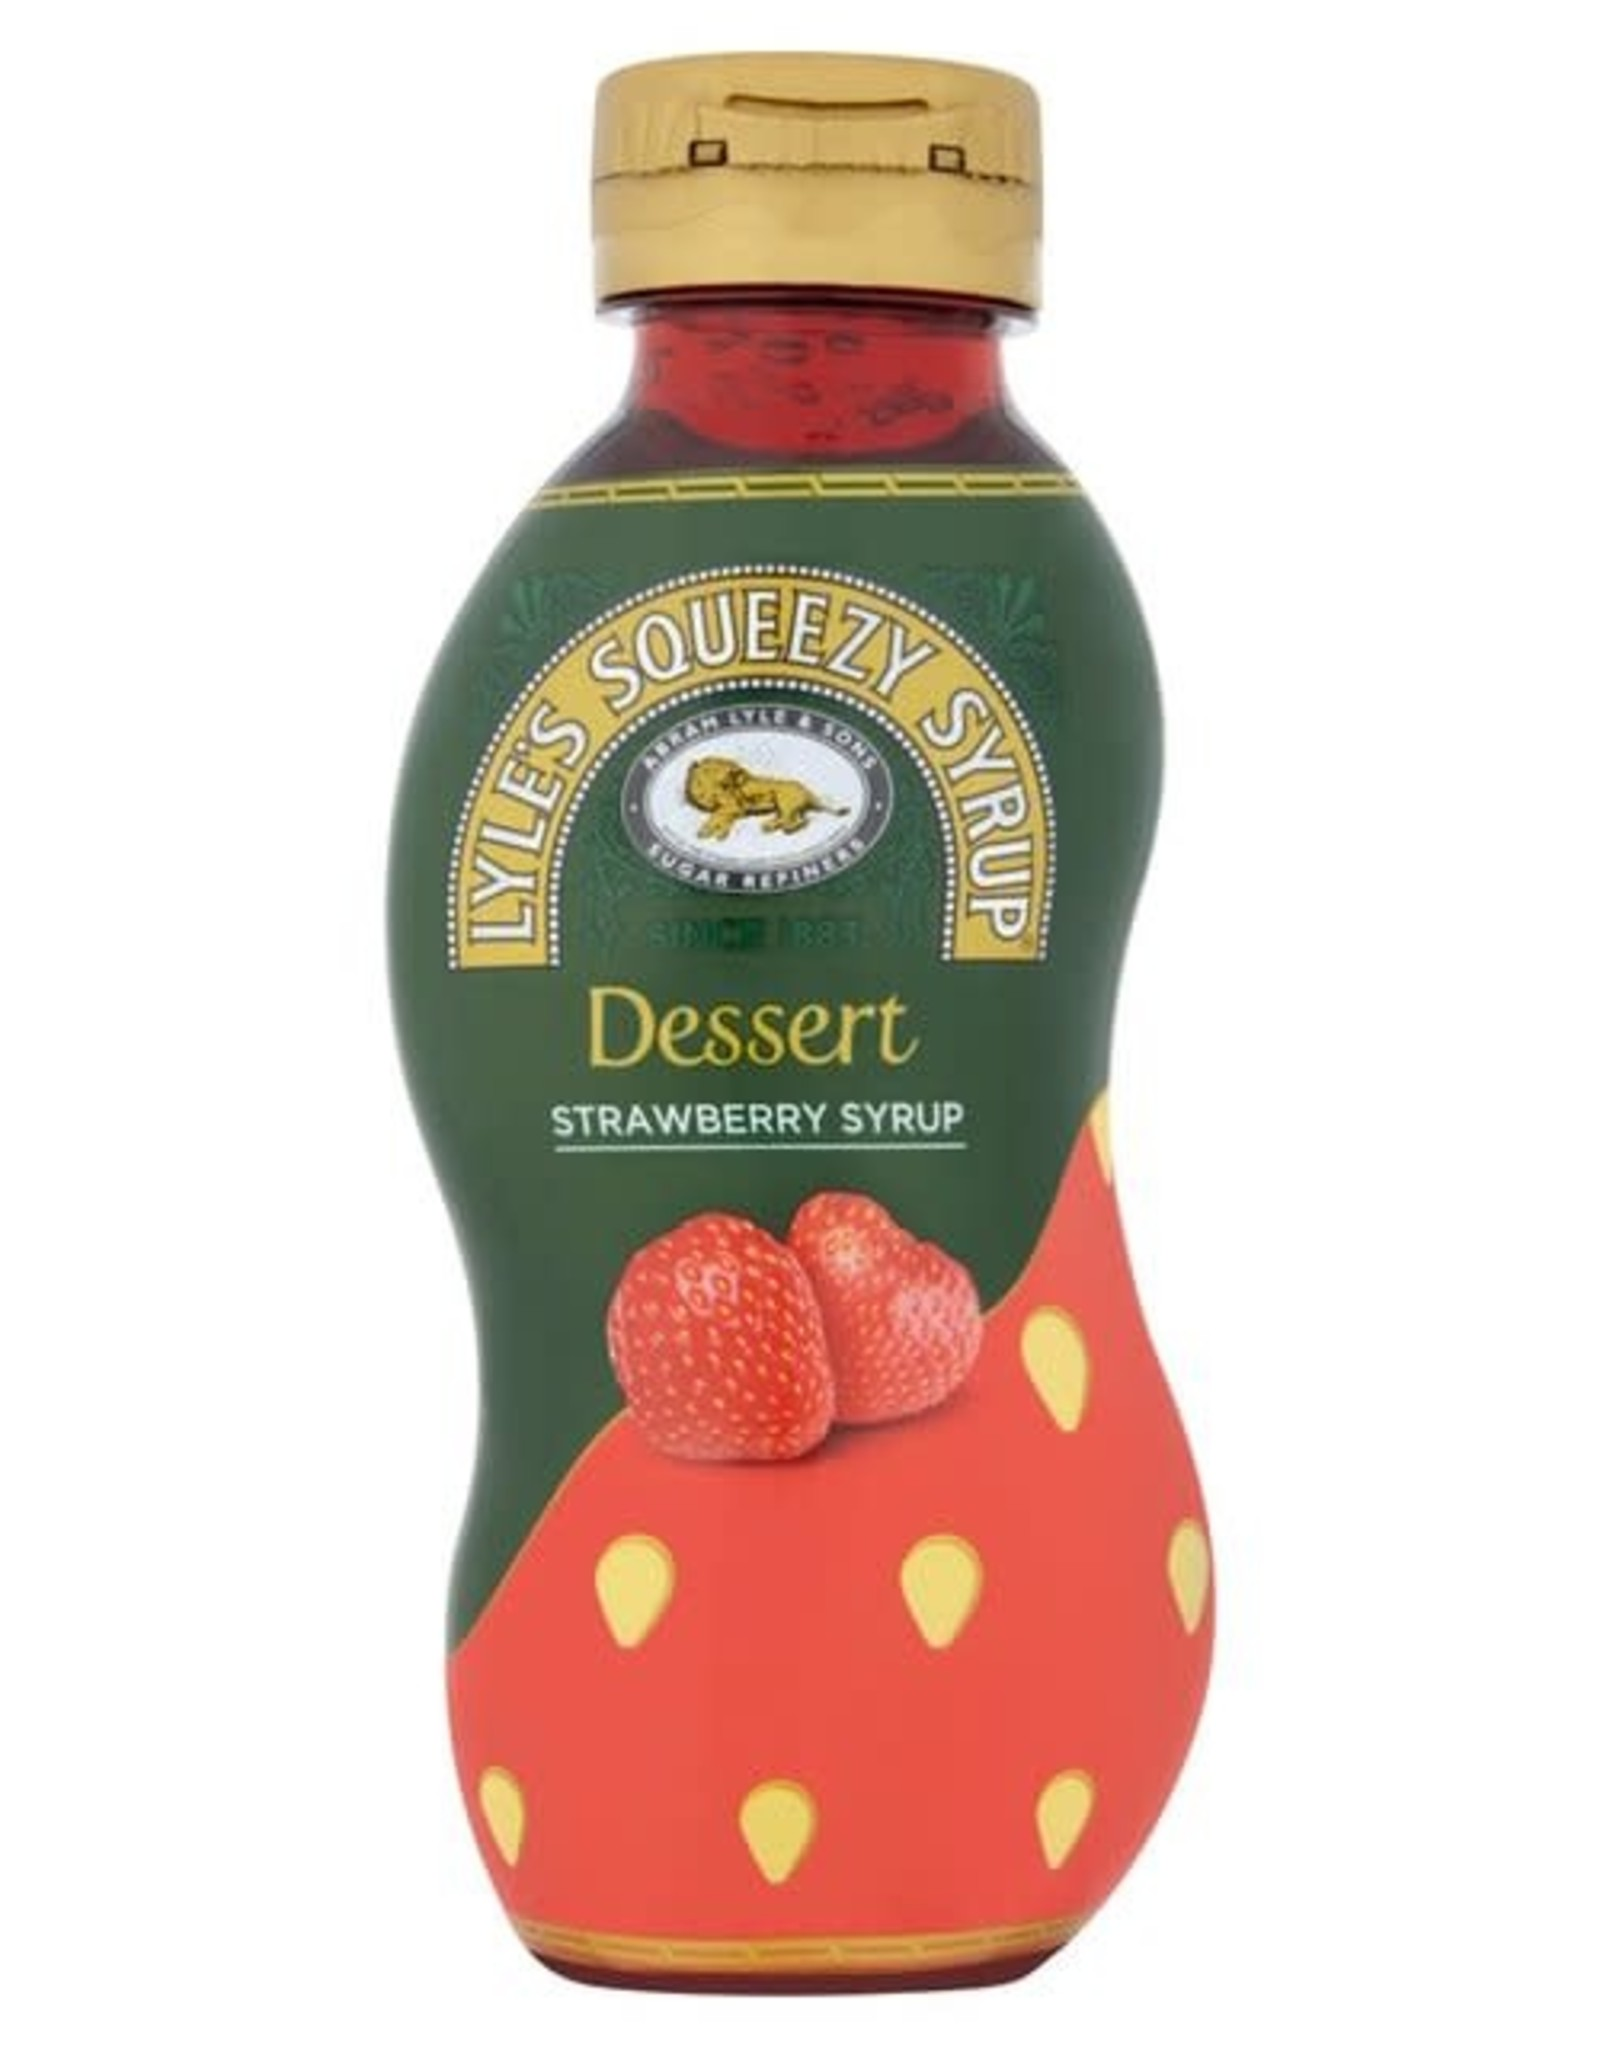 Lyle's Lyle's Strawberry Syrup Squeezy 325 g